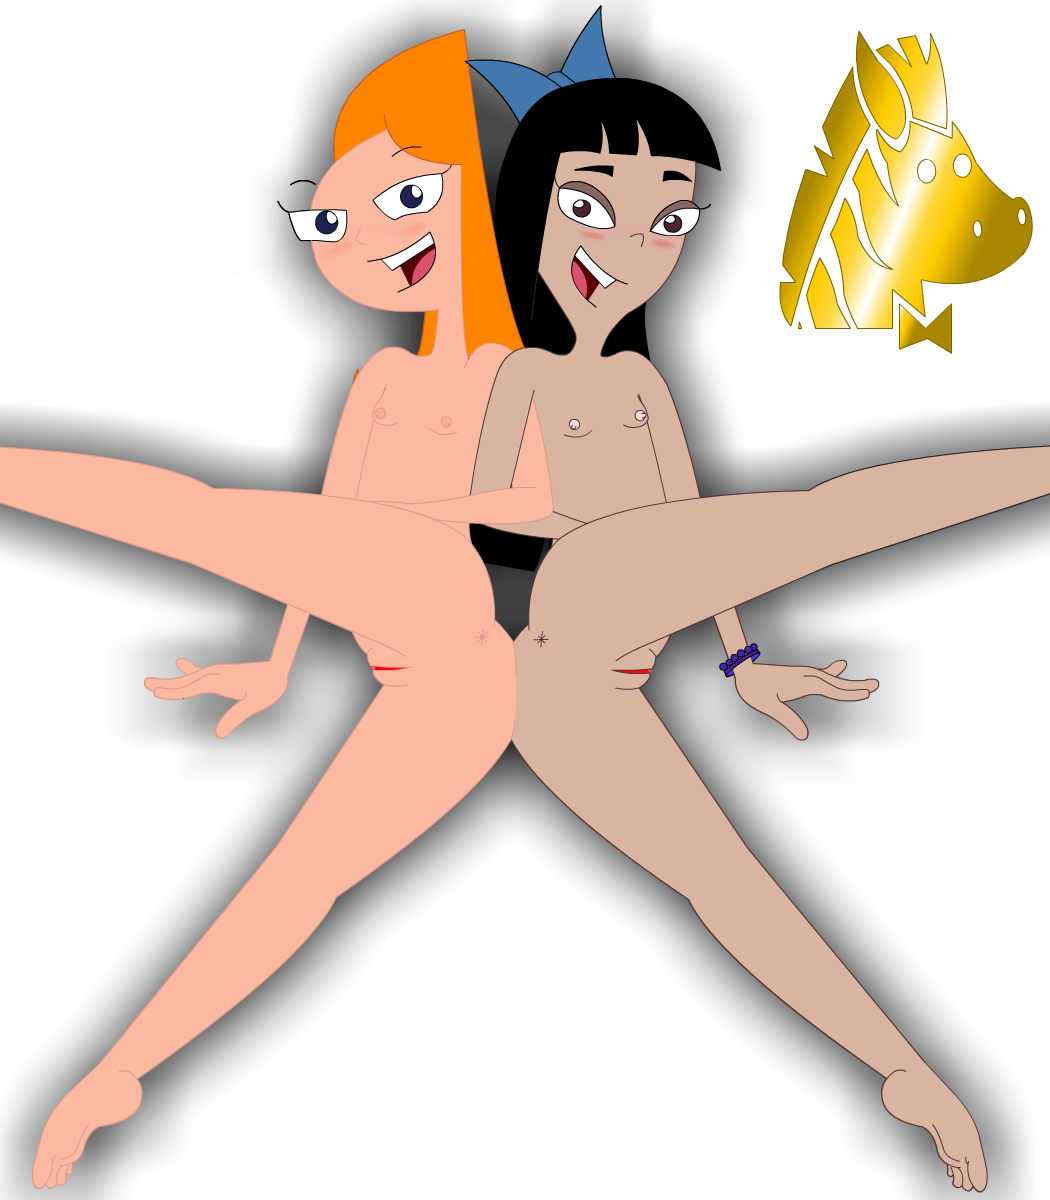 Naked lesbain phineas and ferb sex pics